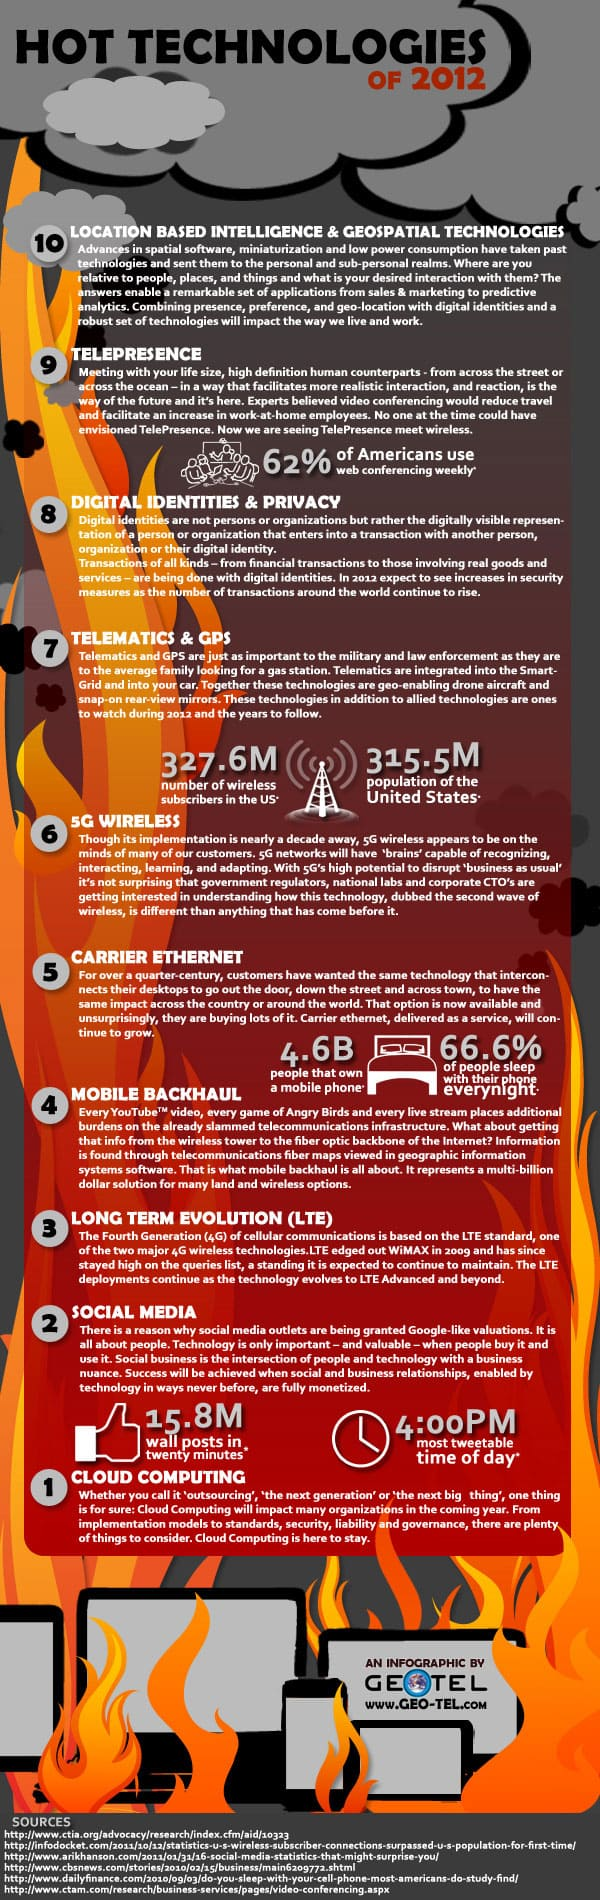 Hot Technologies Of 2012 Infographic